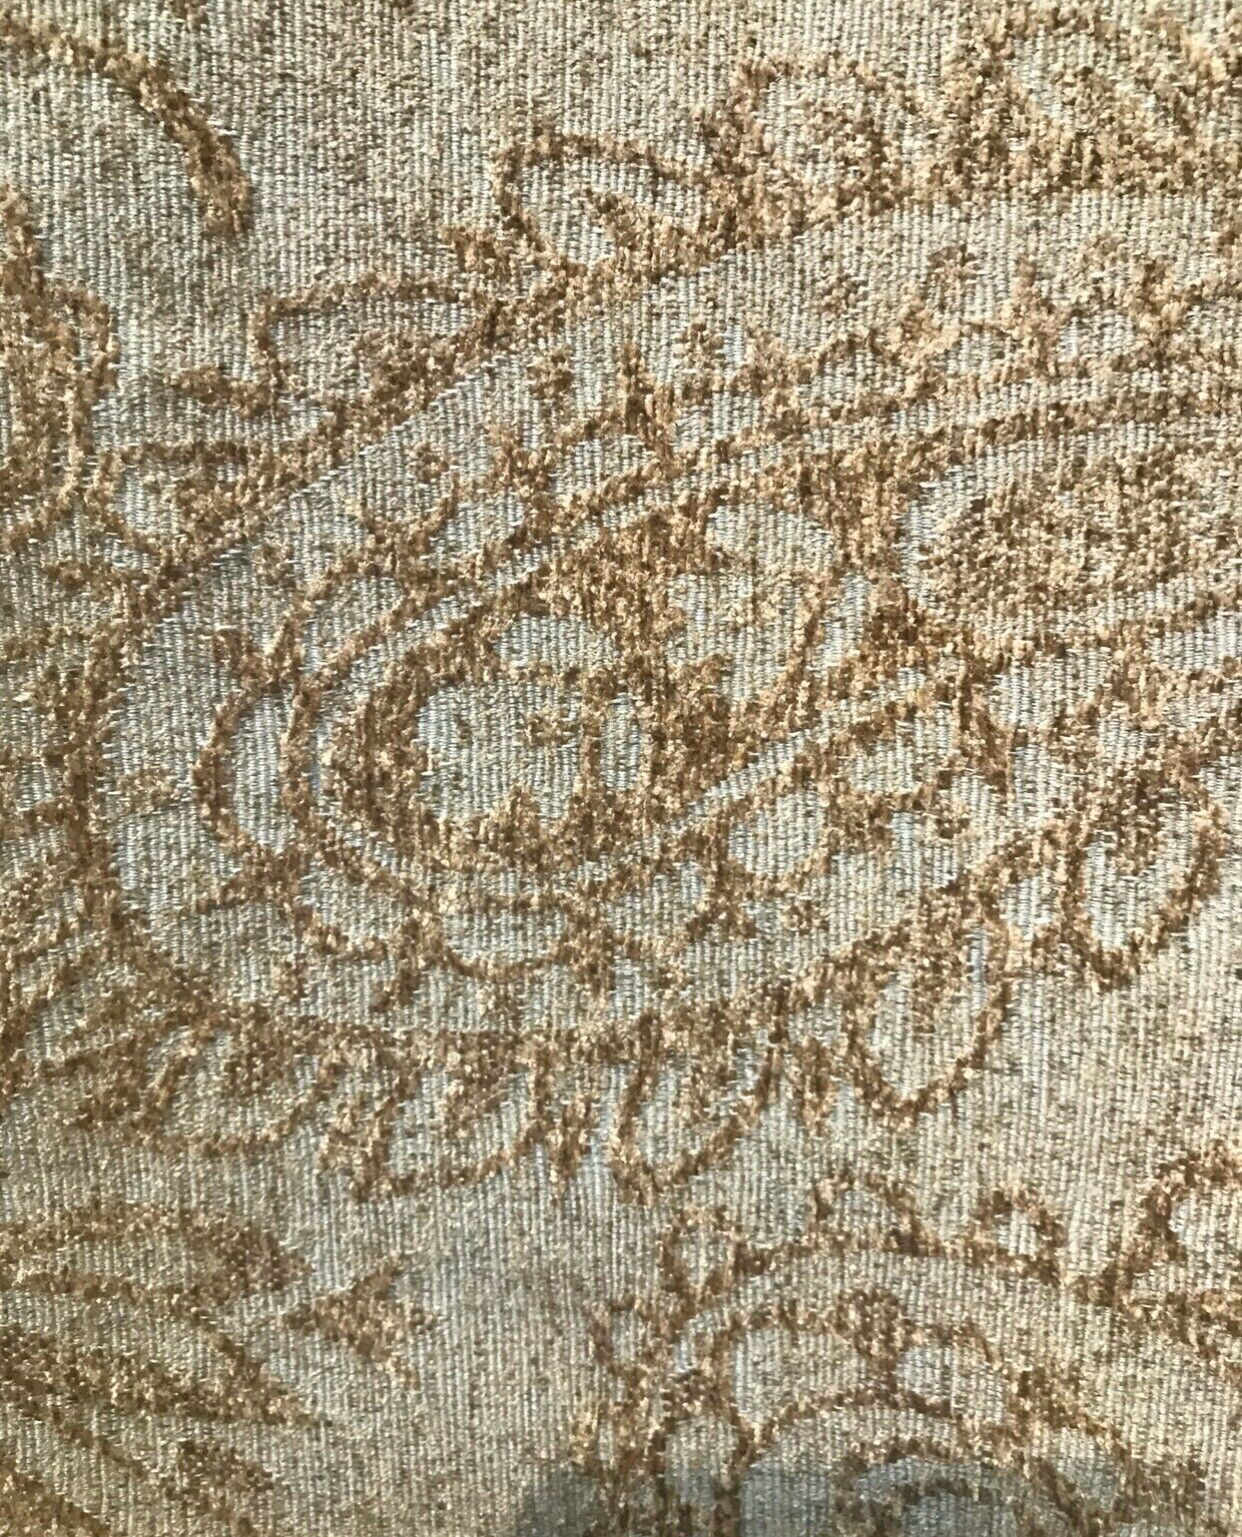 NEW Italian Velvet Chenille Burnout Upholstery Fabric - Sage Green & Taupe BTY